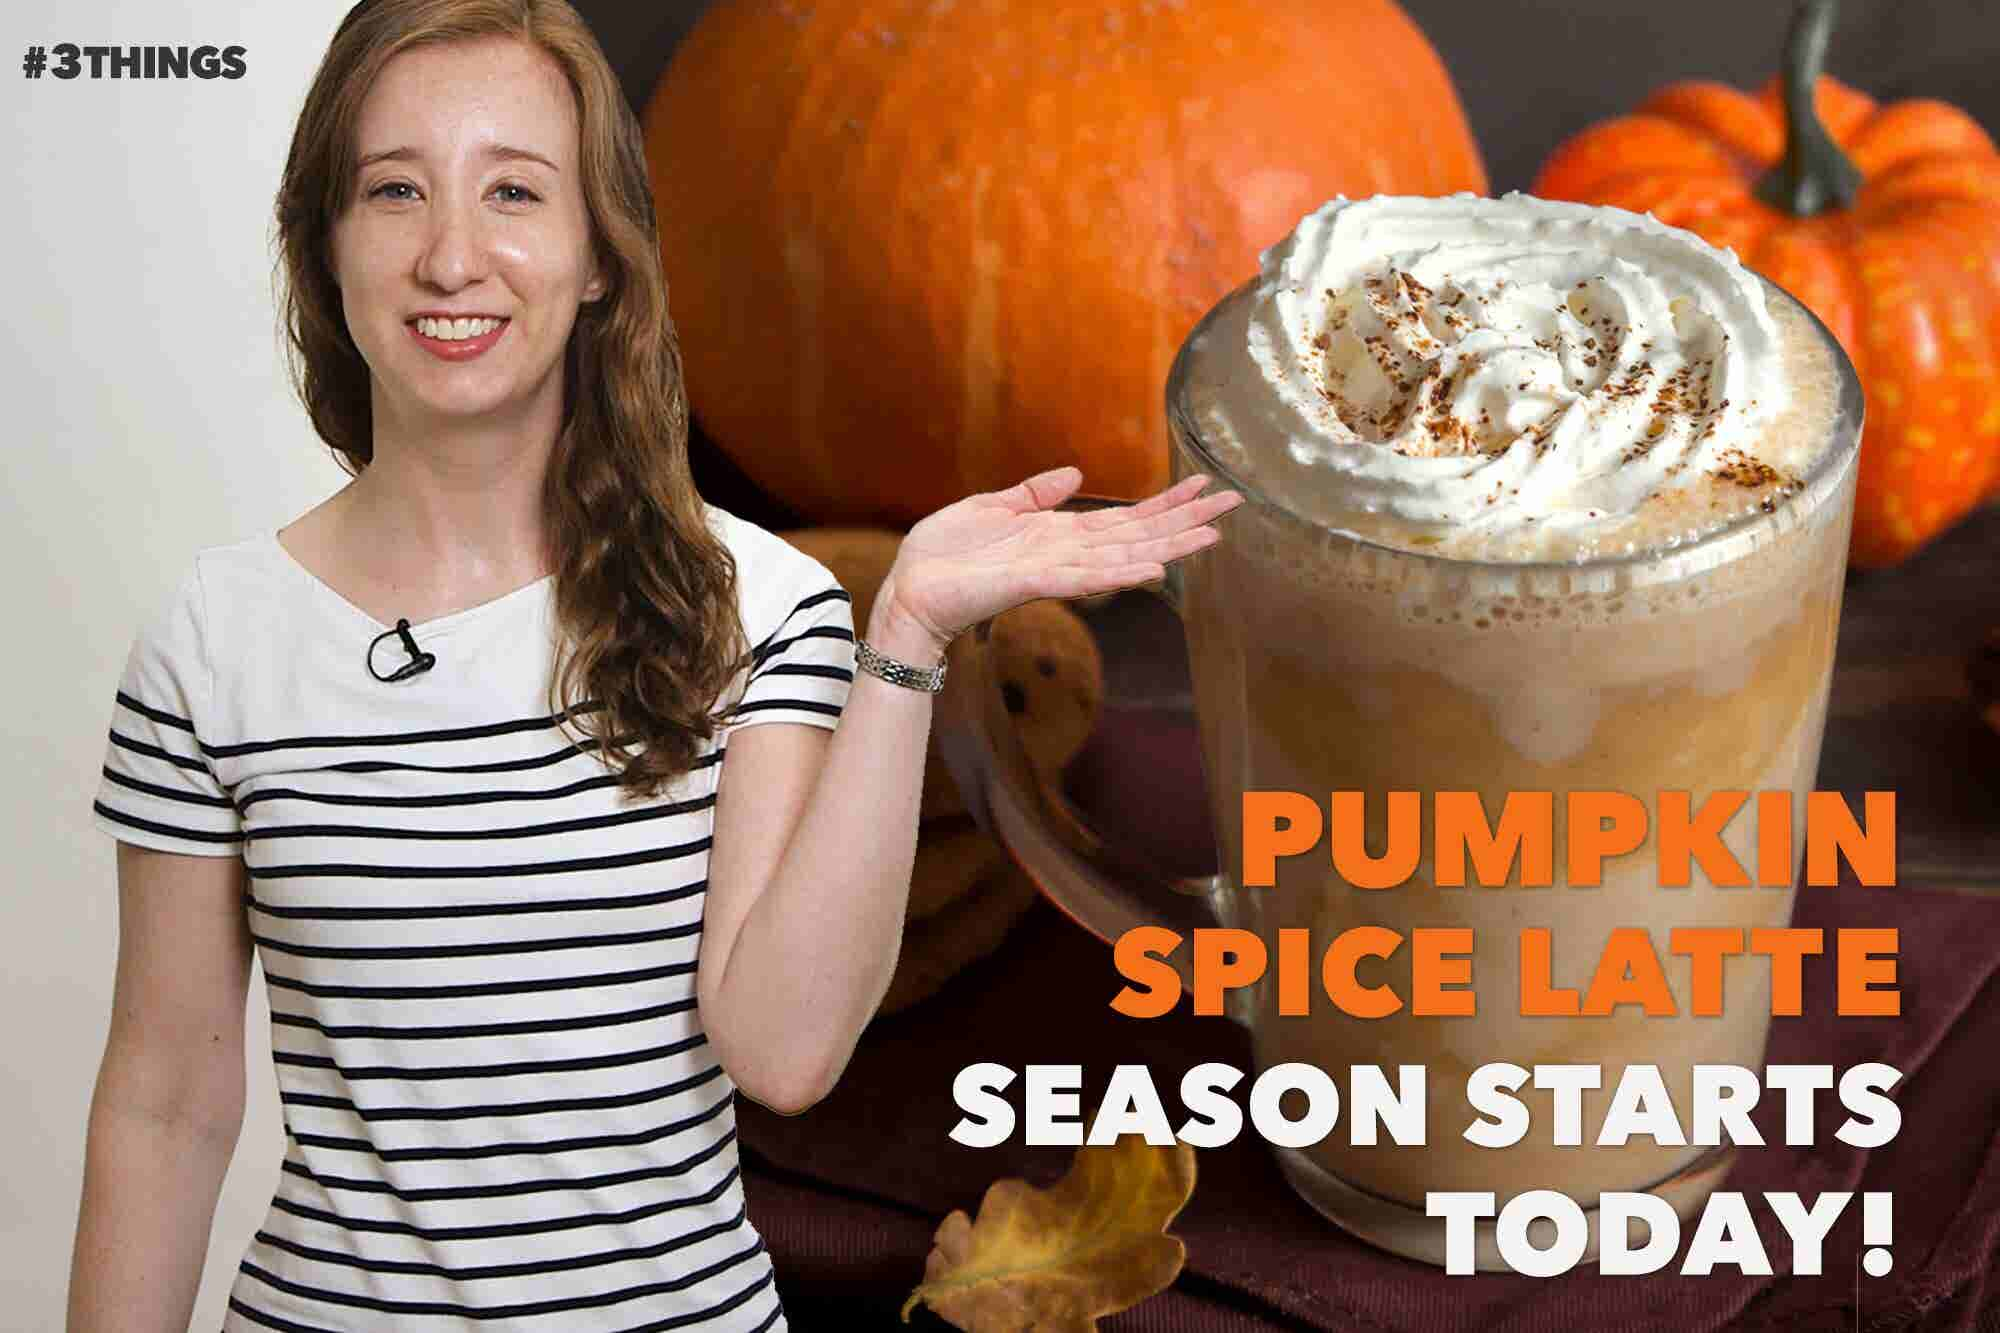 Is It Too Early for Pumpkin Spice Lattes? 3 Things to Know Today.